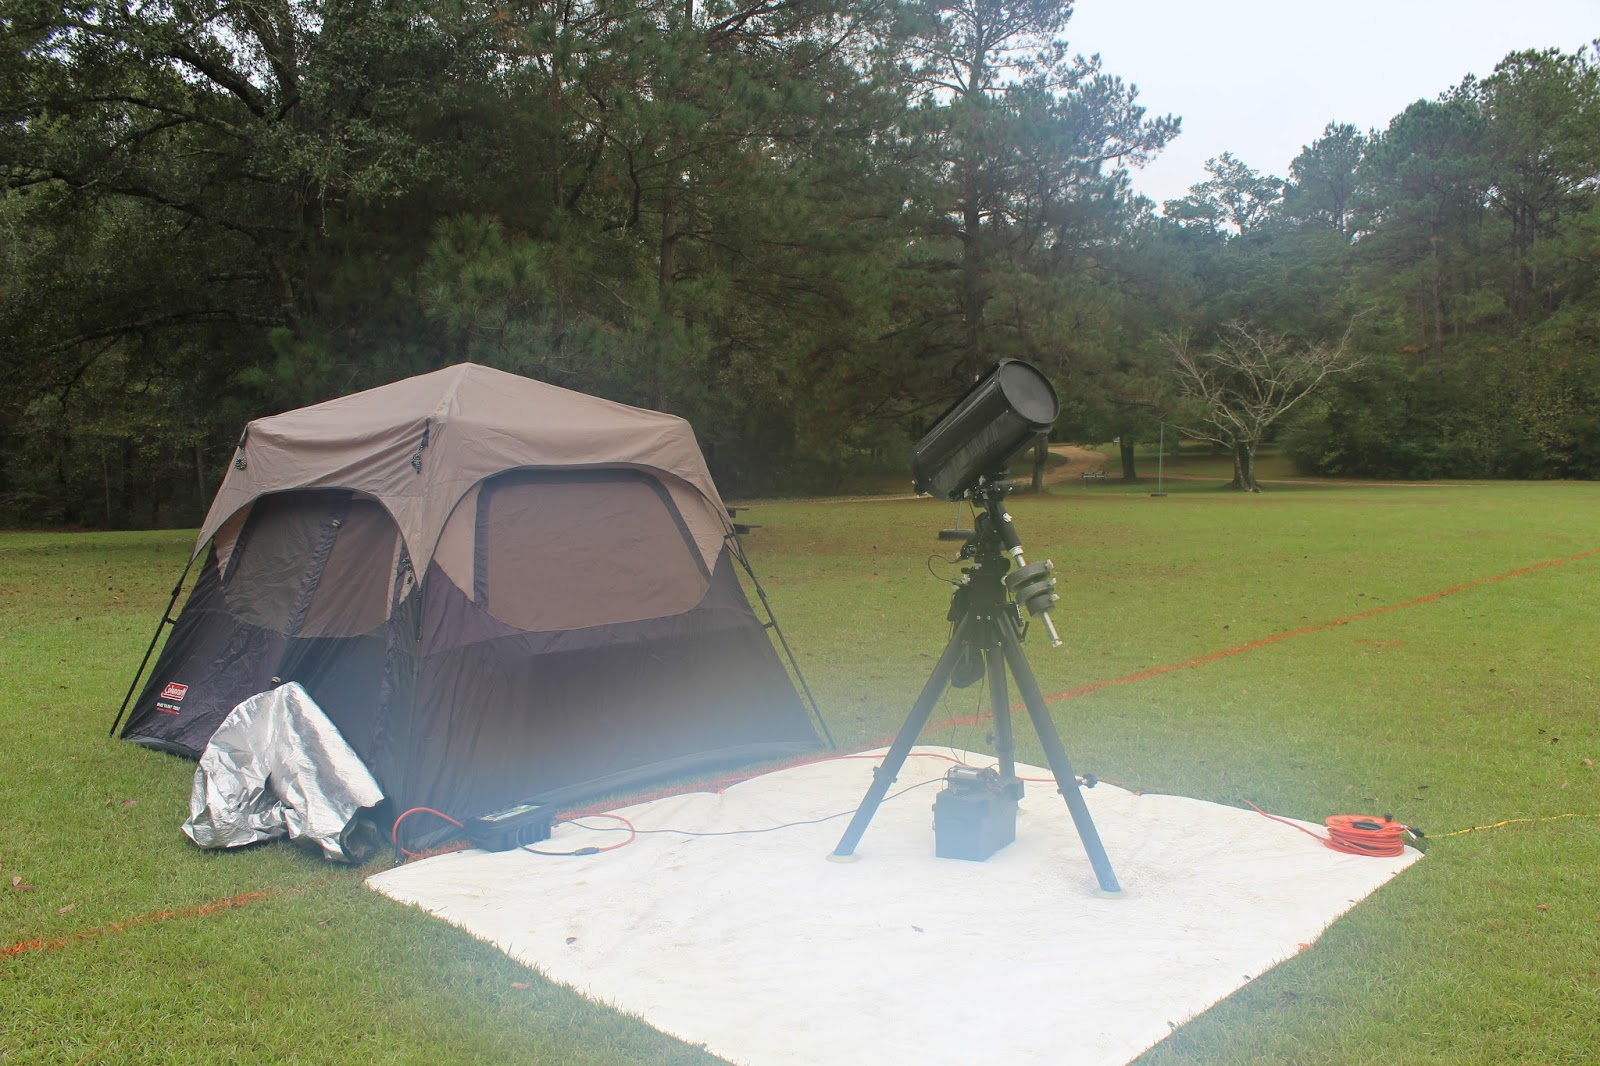 Having it on the field just a short distance from my scope setup is very convenient. The site has electrical hookups for up to 4 c&ing trailers ... & Luling Skies: 2015 Deep South Regional Star Gaze